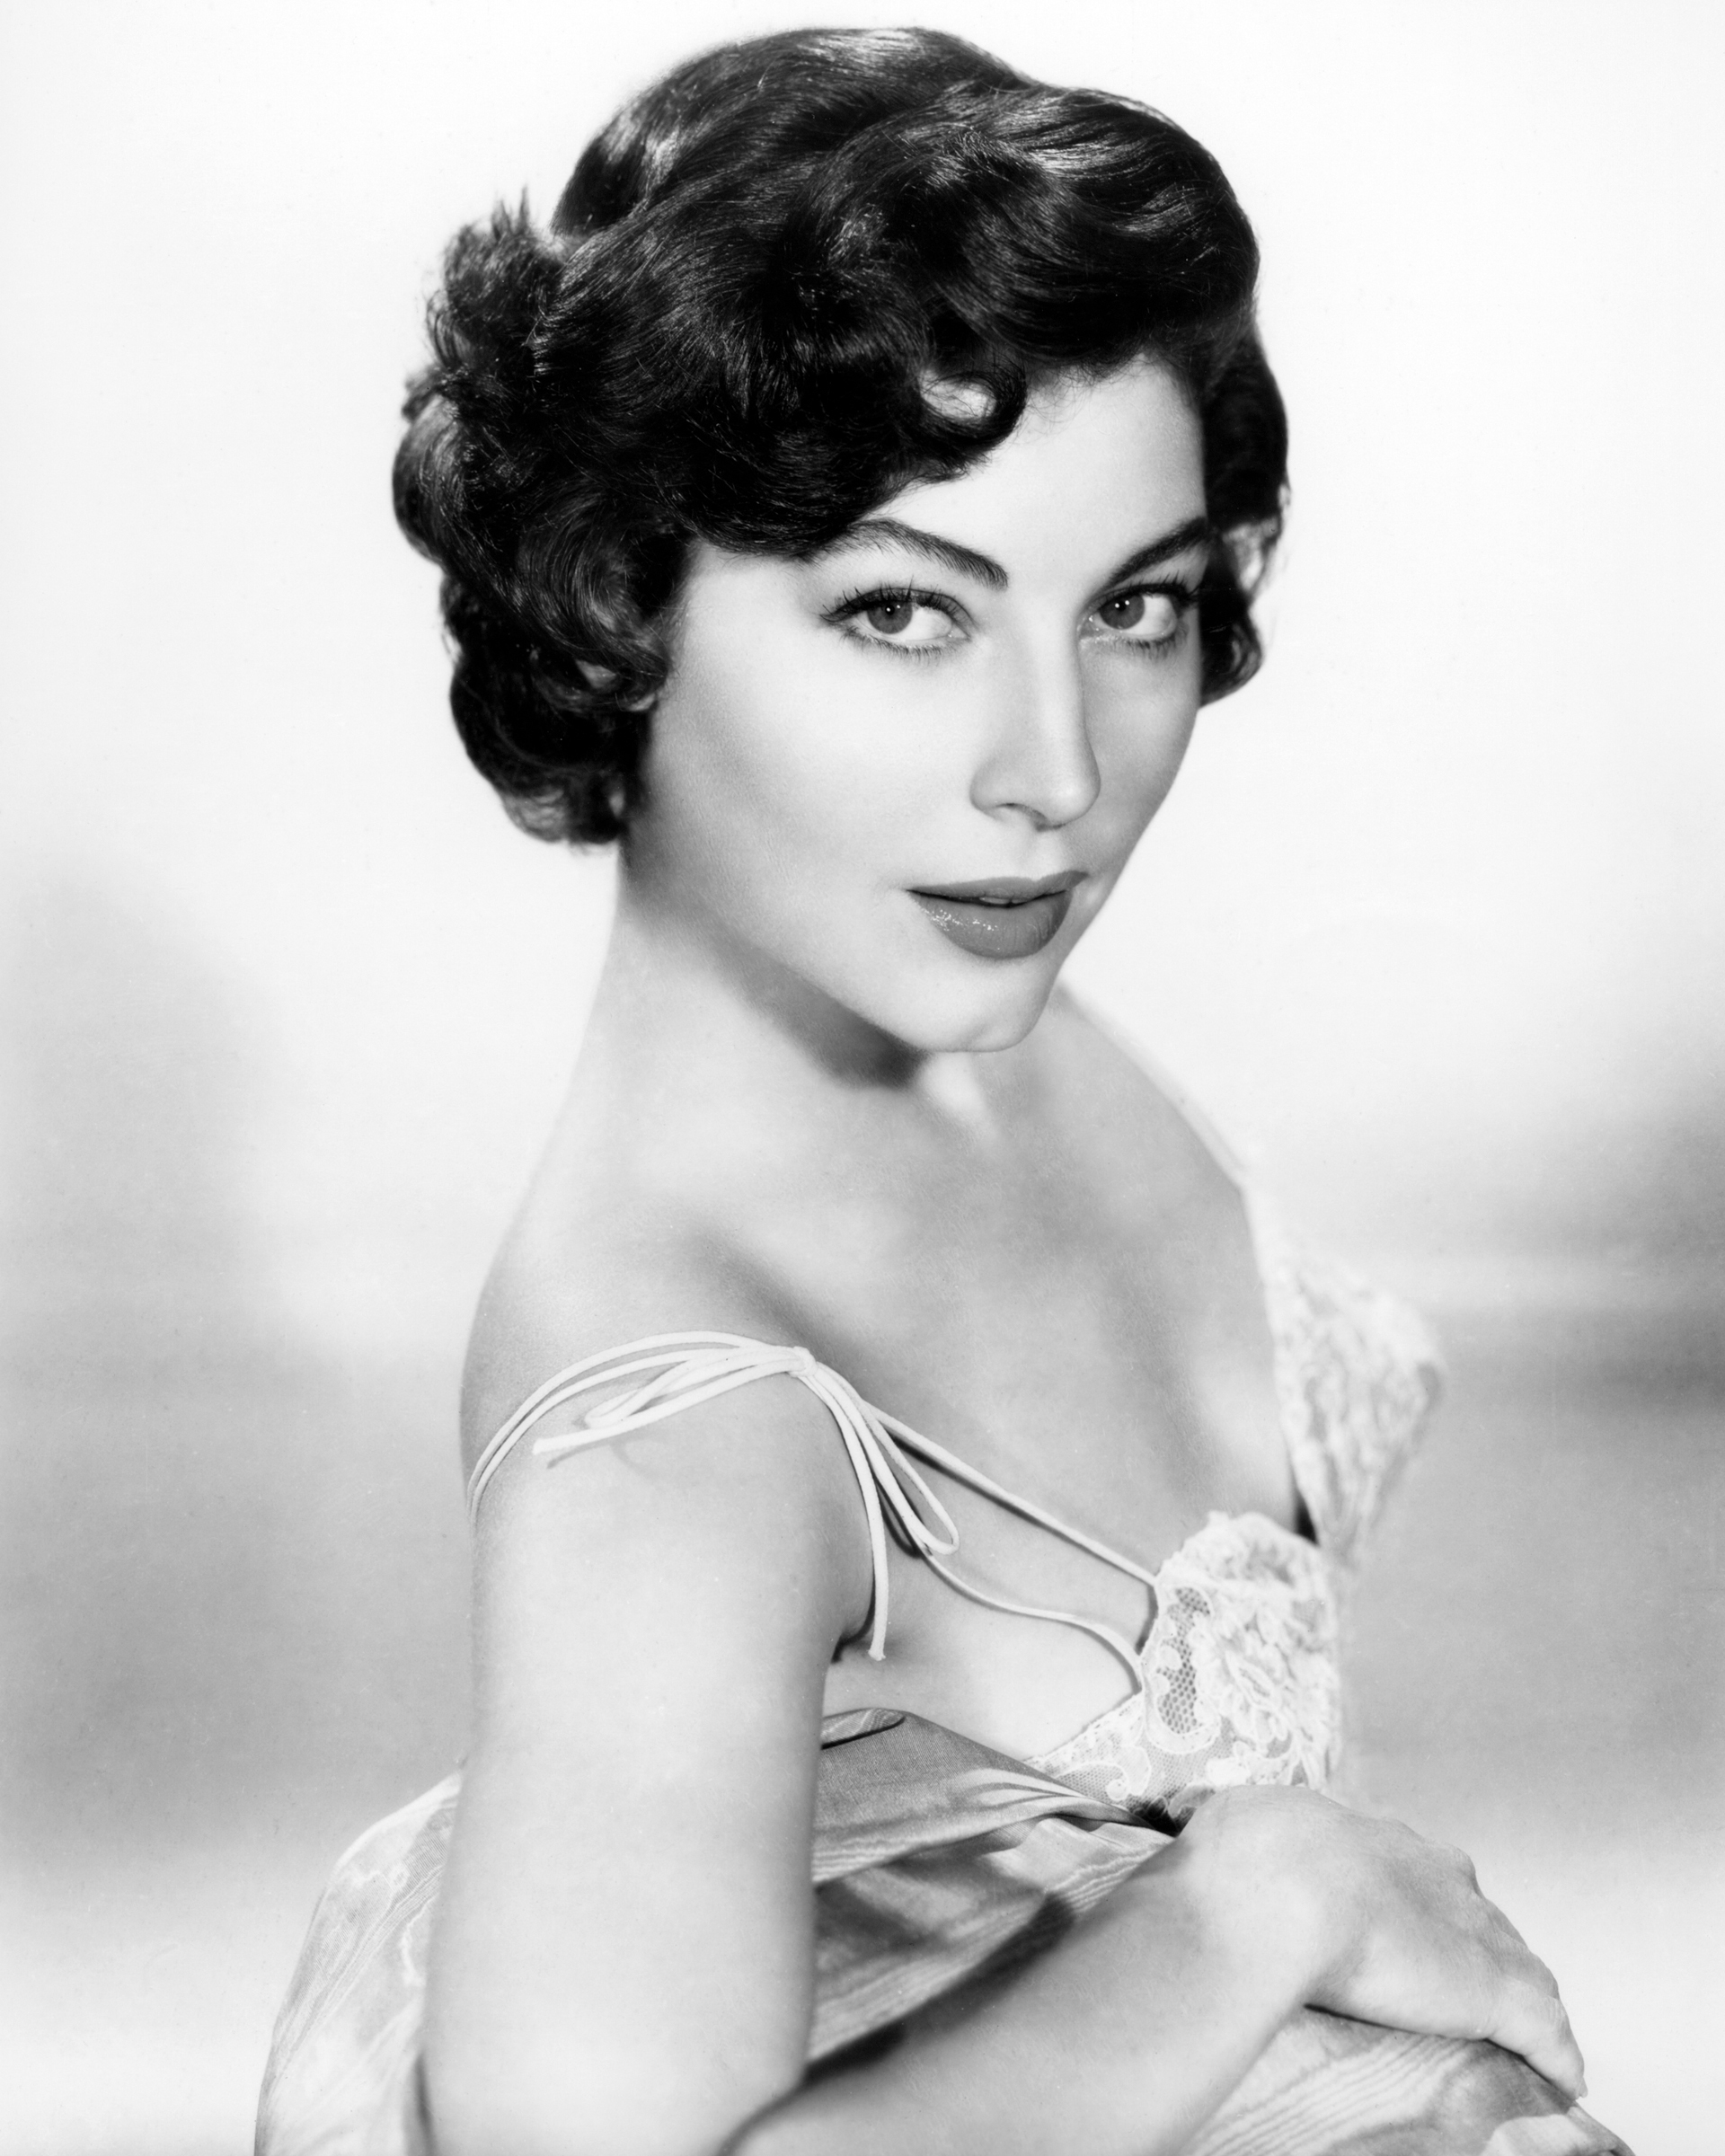 styling short pixie hair 47 best pixie cuts of all time iconic pixie haircut ideas 1940 | 548f37b1d269d rbk pixie cuts ava gardner s2 57969196